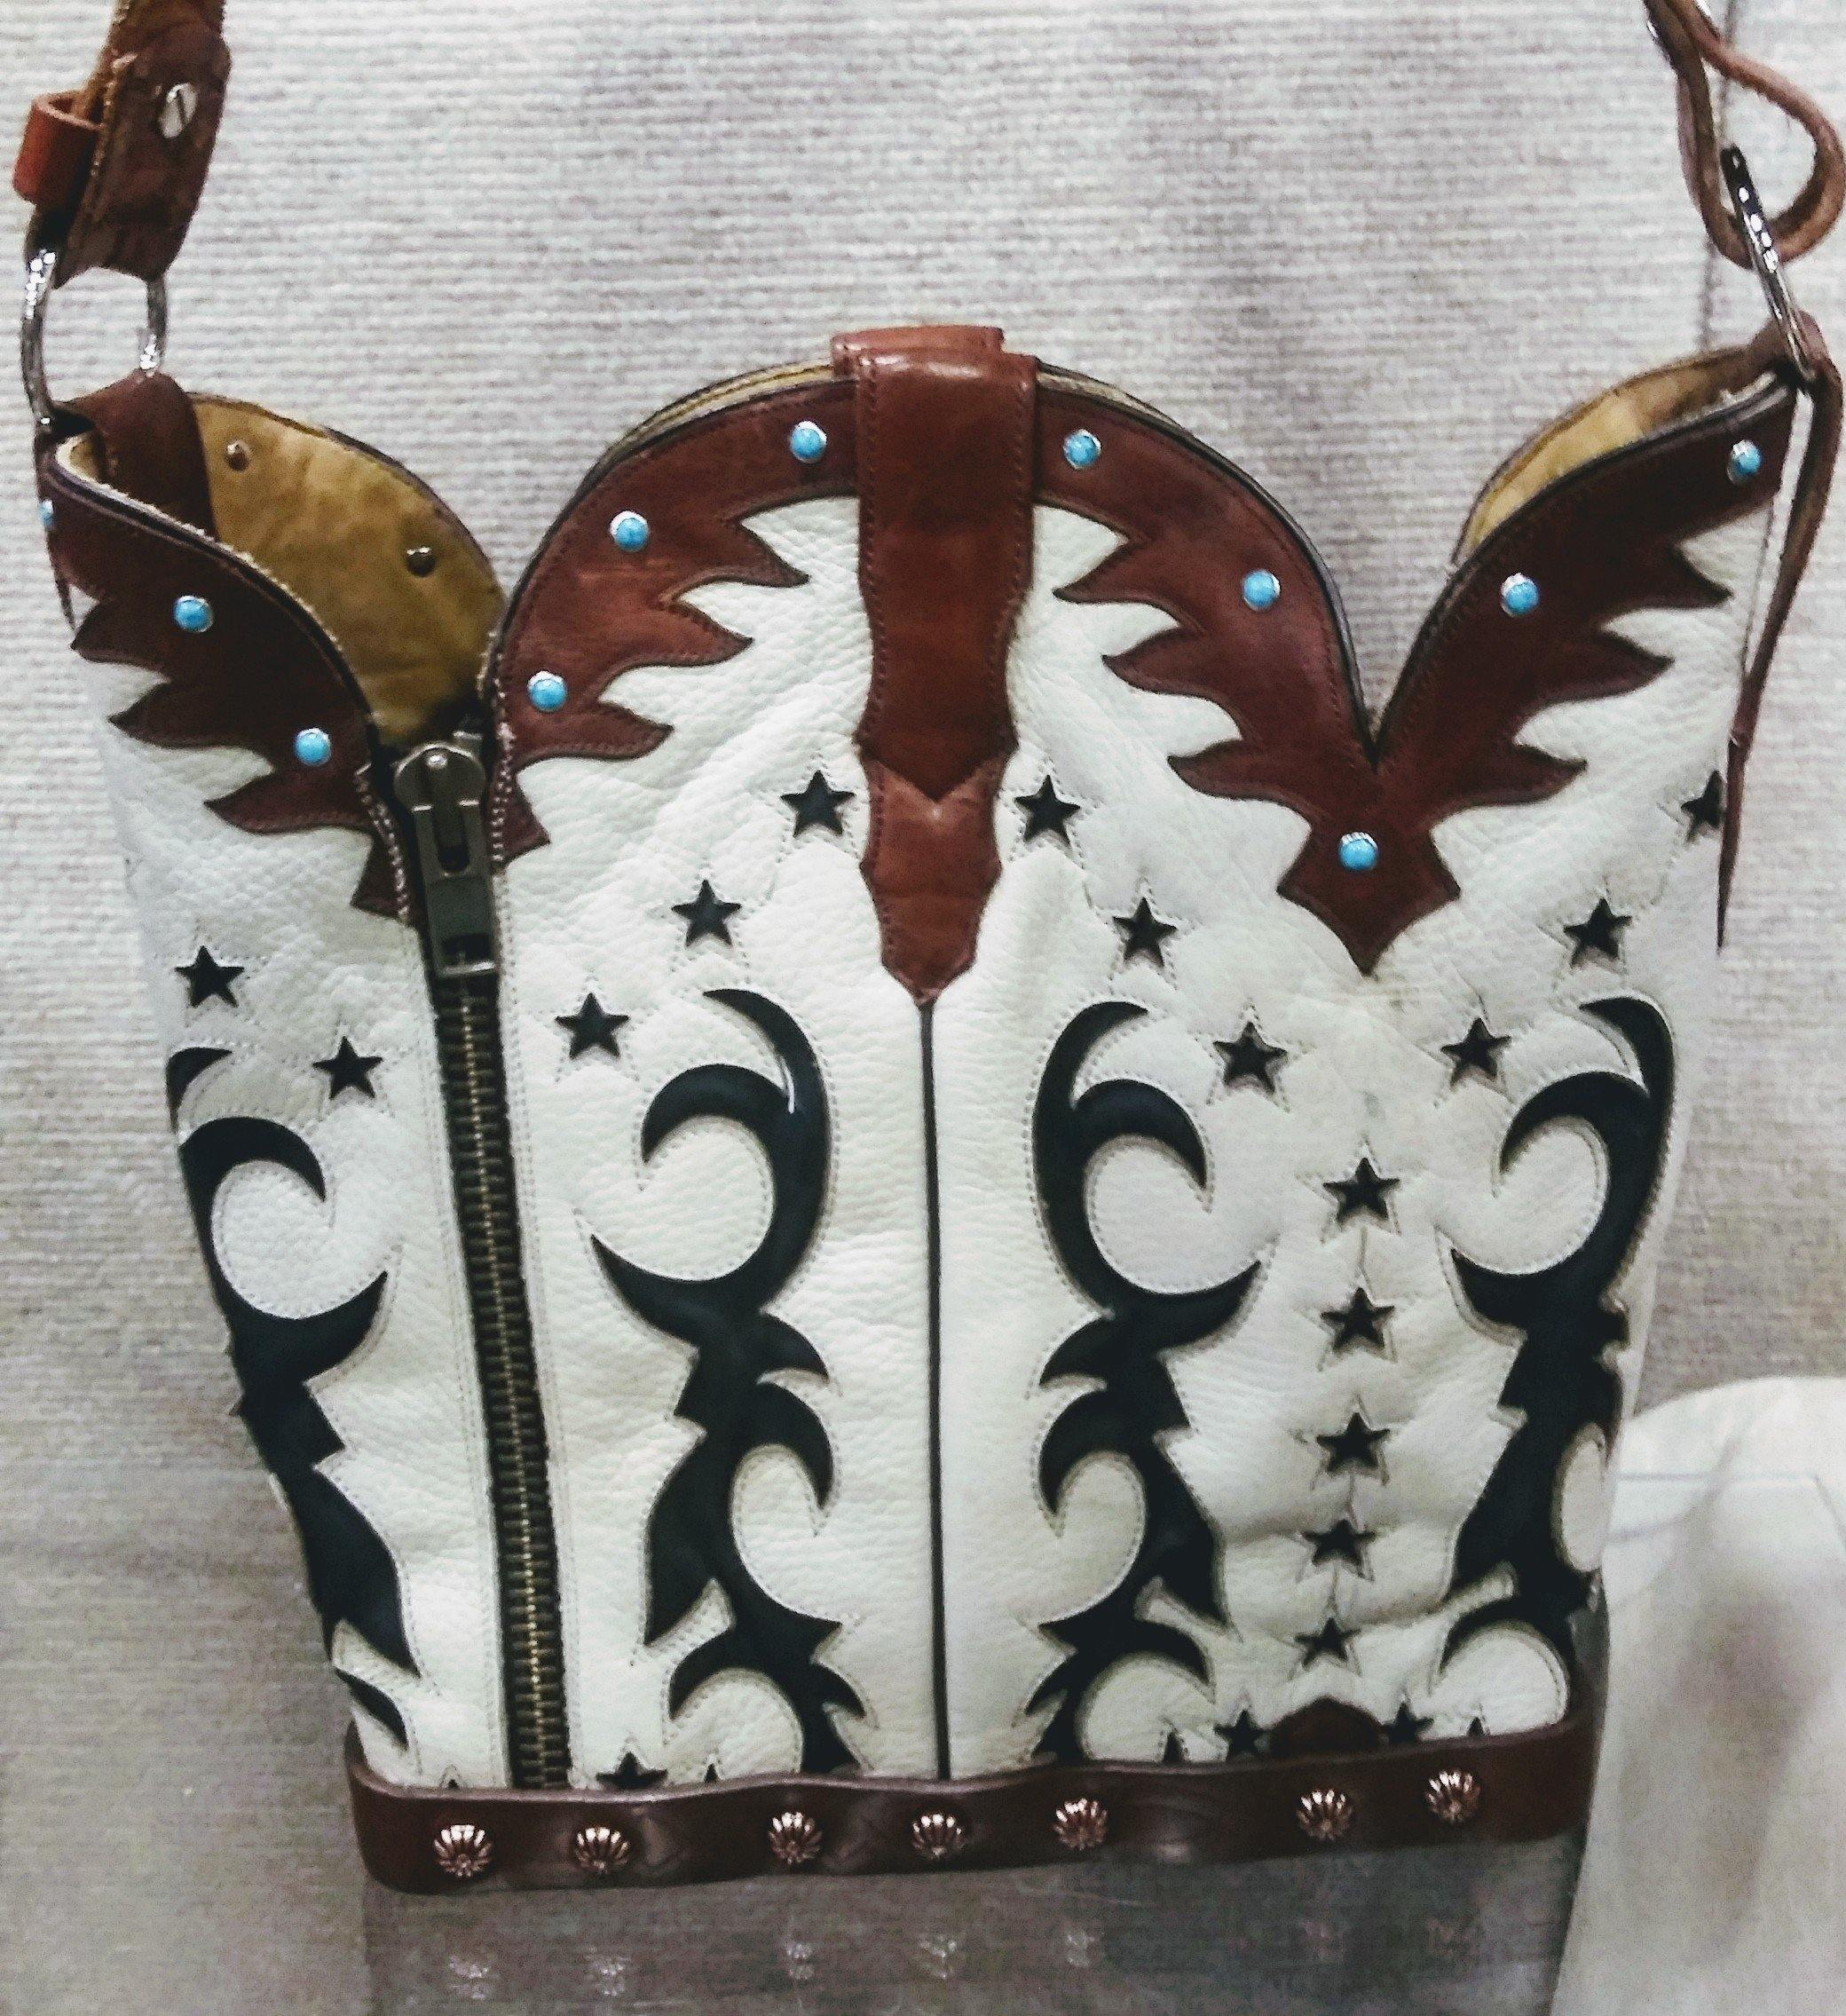 Cowboy Boot Purse - Handcrafted Western Handbag - Leather Western Purse BK34 cowboy boot purses, western fringe purse, handmade leather purses, boot purse, handmade western purse, custom leather handbags Chris Thompson Bags